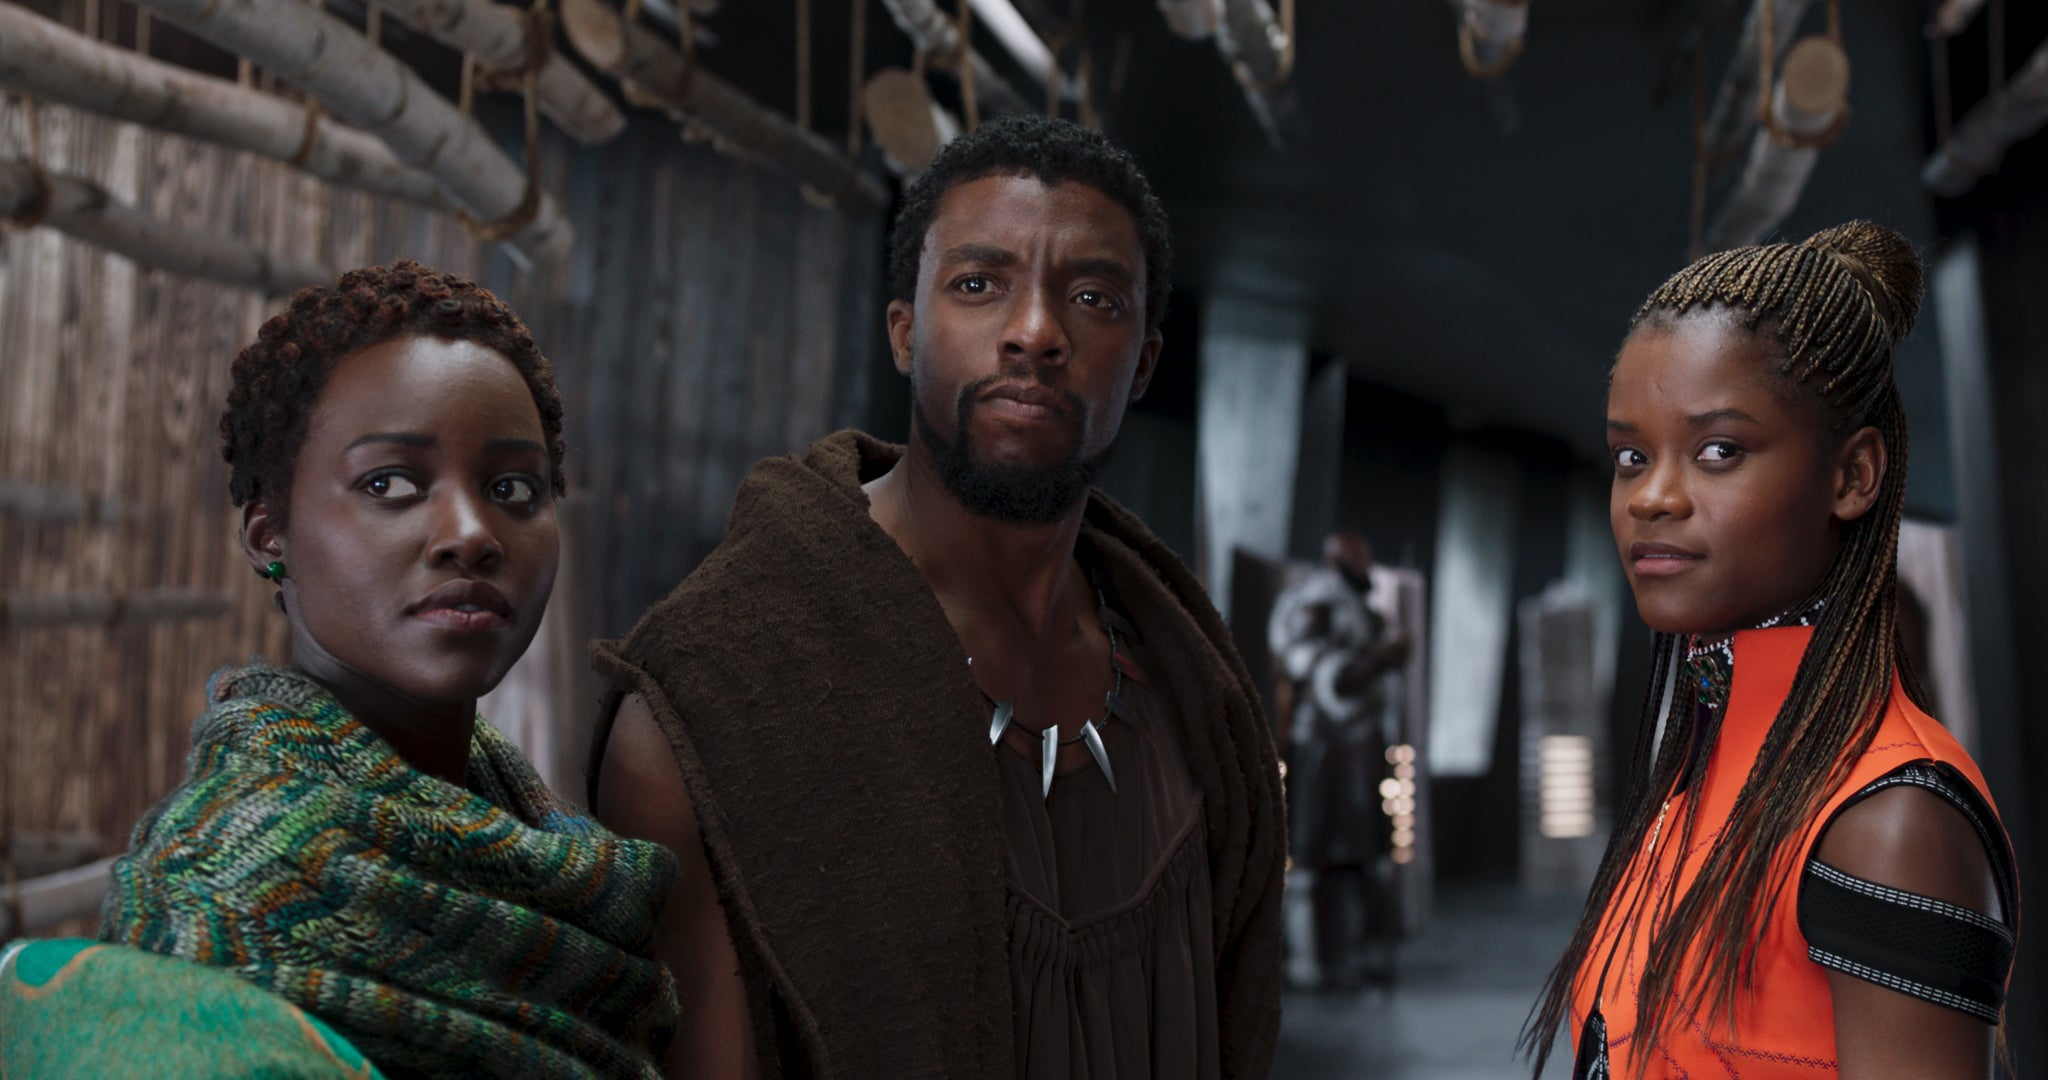 Here's Our Spoiler-Free Video Review Of The IndomitableBlack Panther